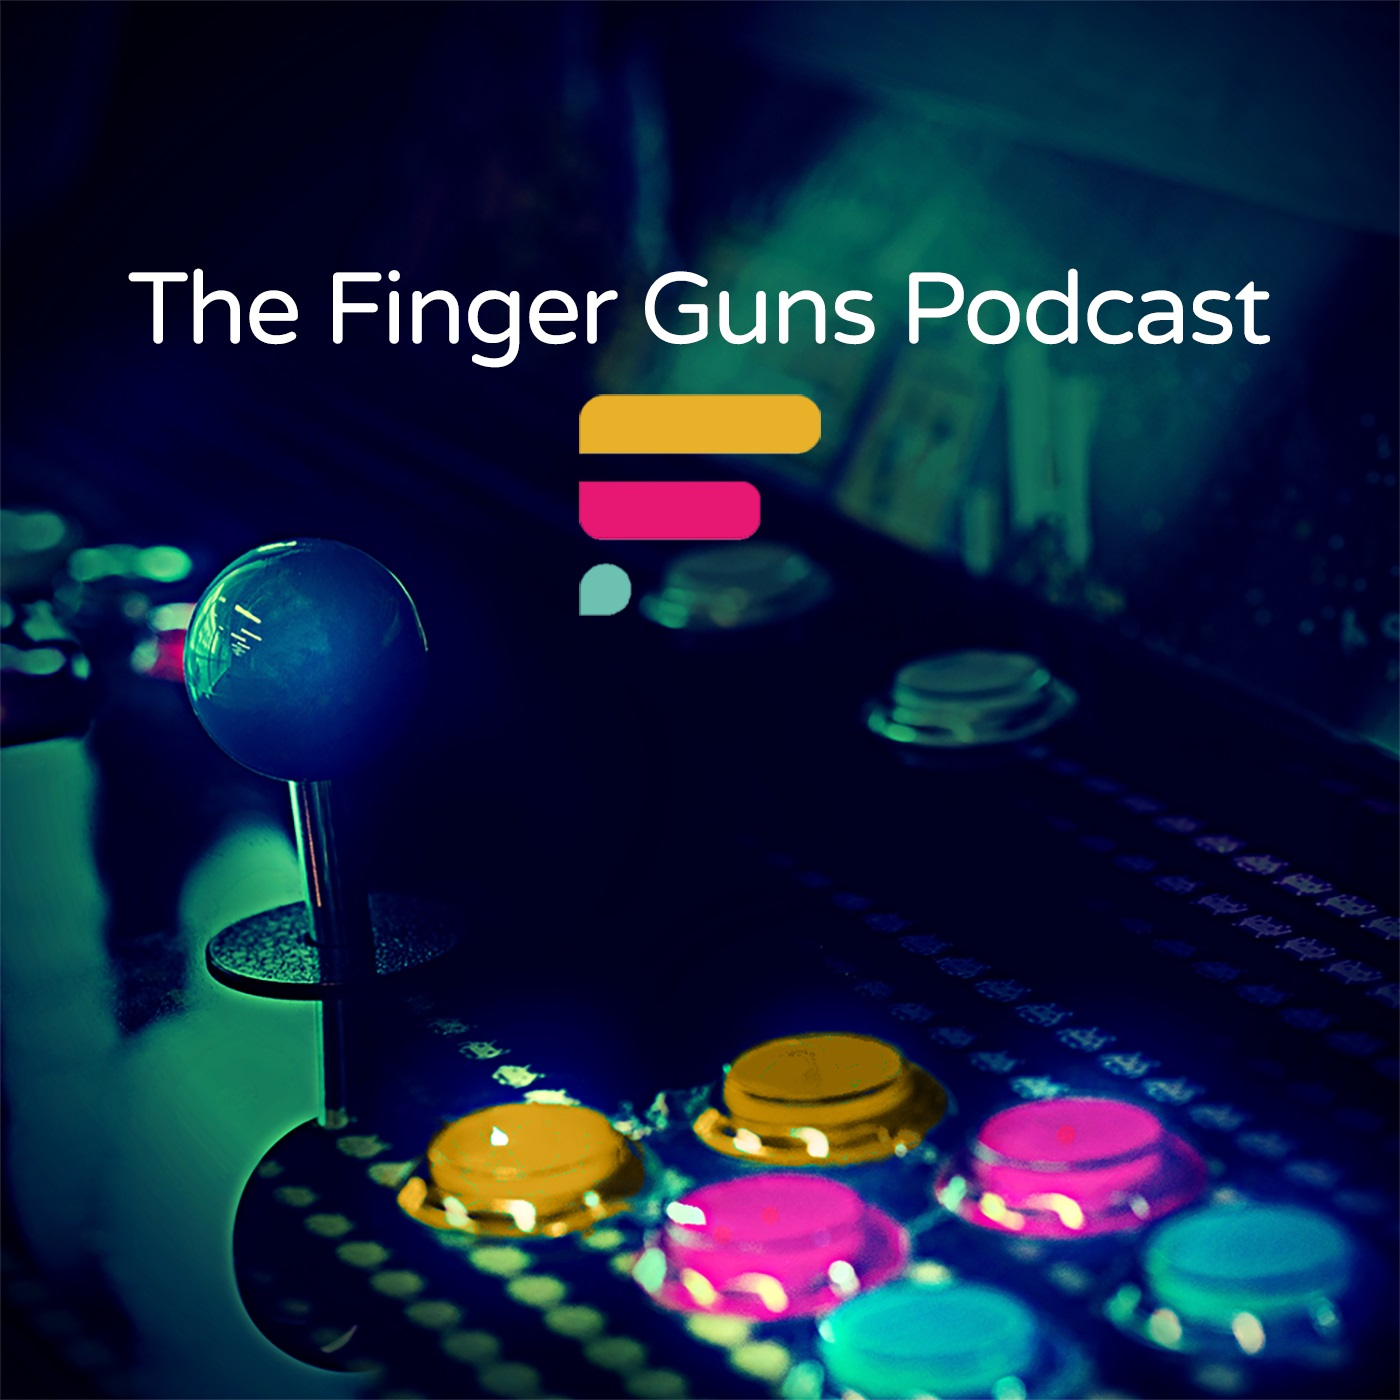 The Finger Guns Podcast